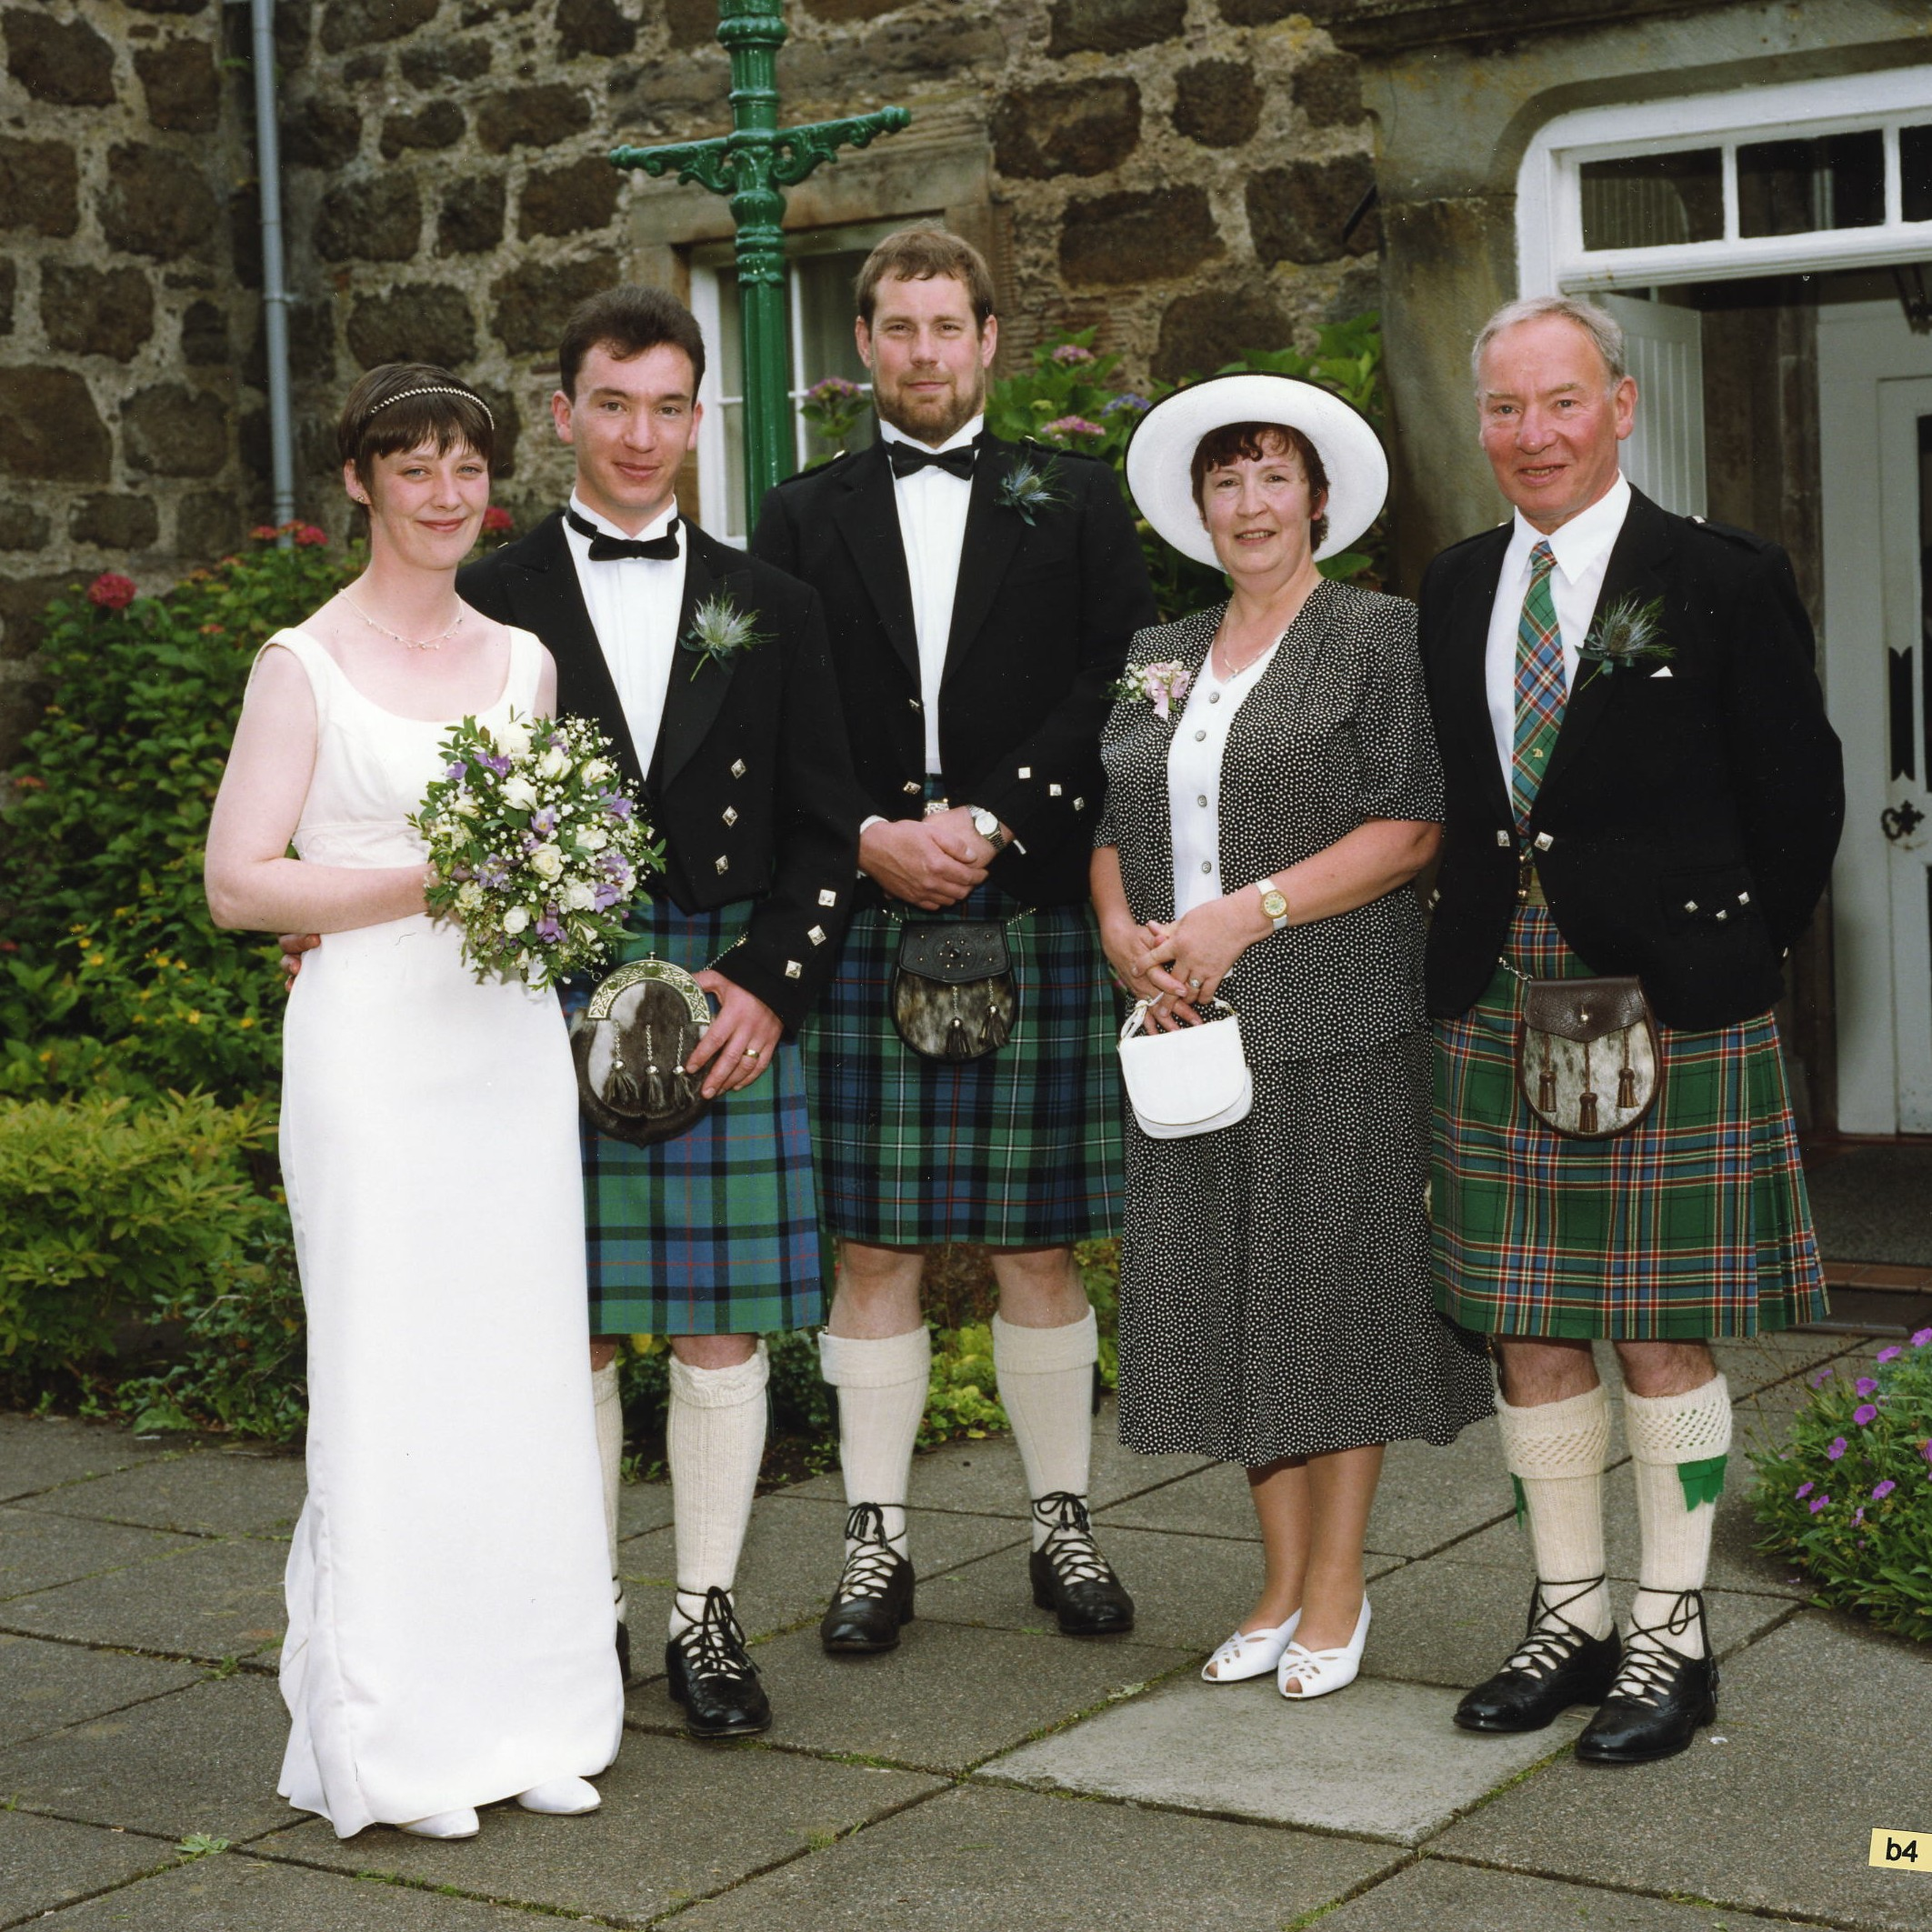 David Callander & Catherine MacKenzie's Wedding